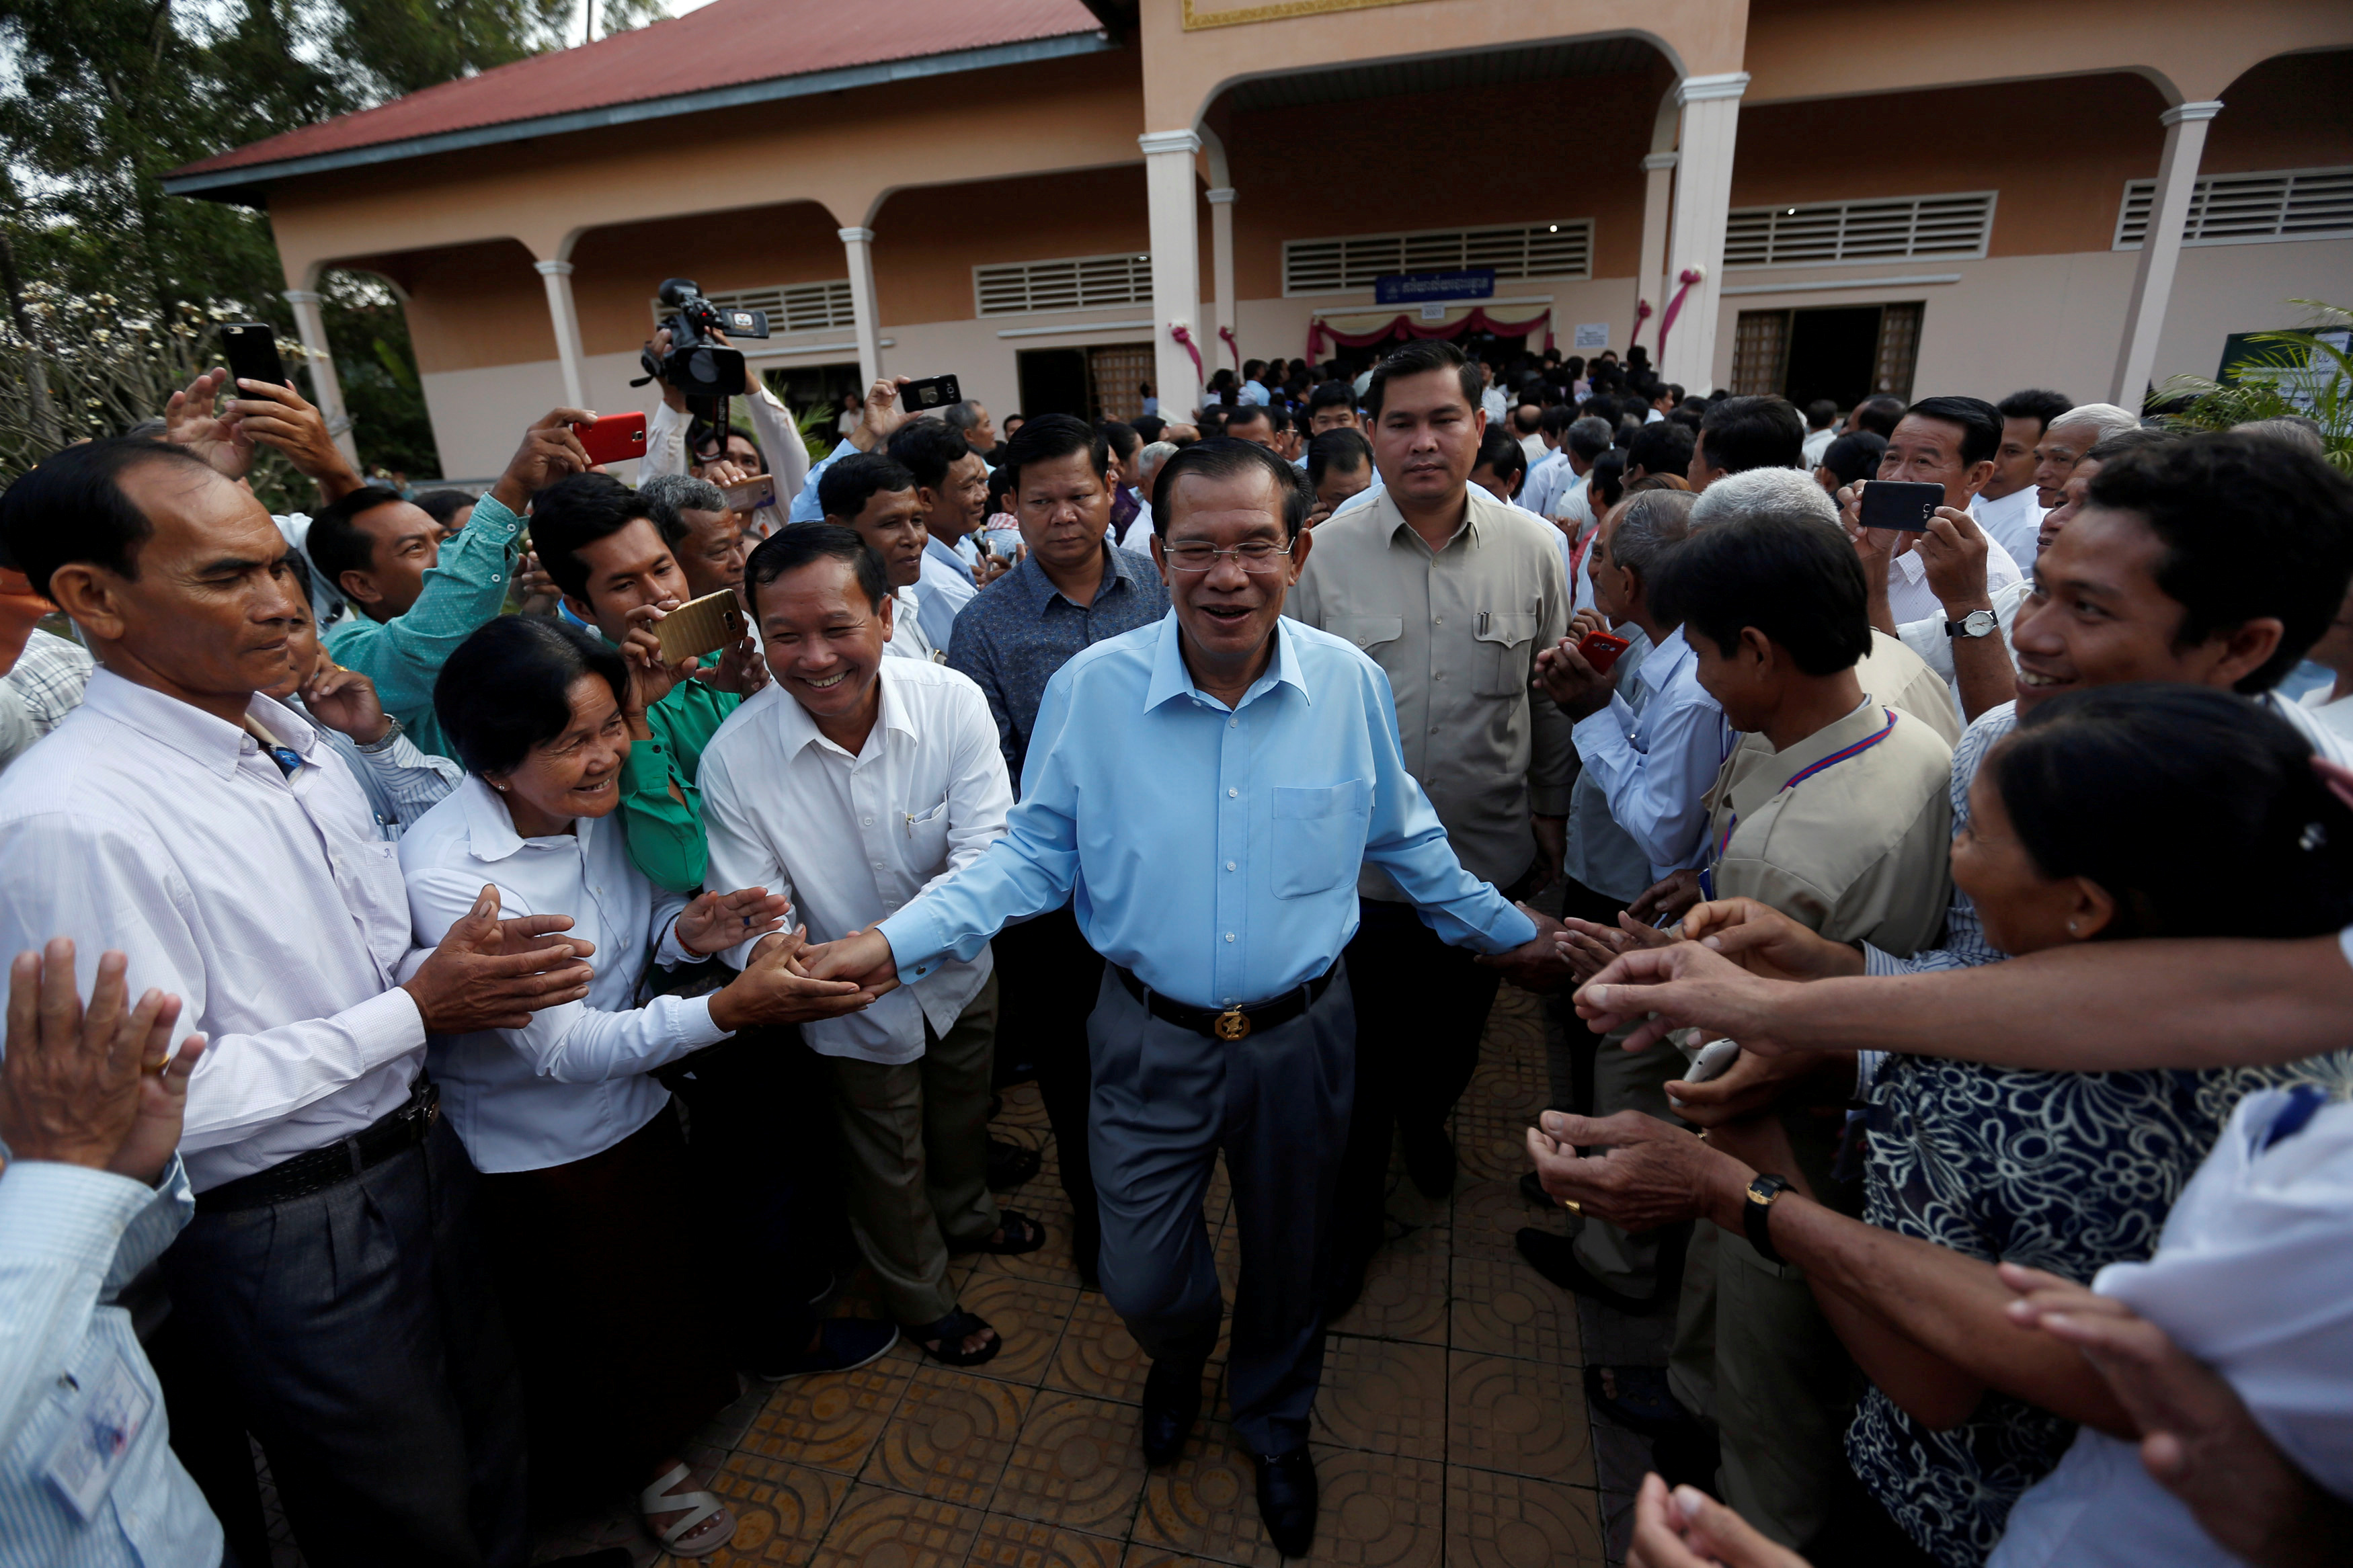 Cambodia's Prime Minister Hun Sen surrounded by commune counselors during at a Senate election polling station in Takhmao, Kandal province, Cambodia on Feb. 25, 2018.